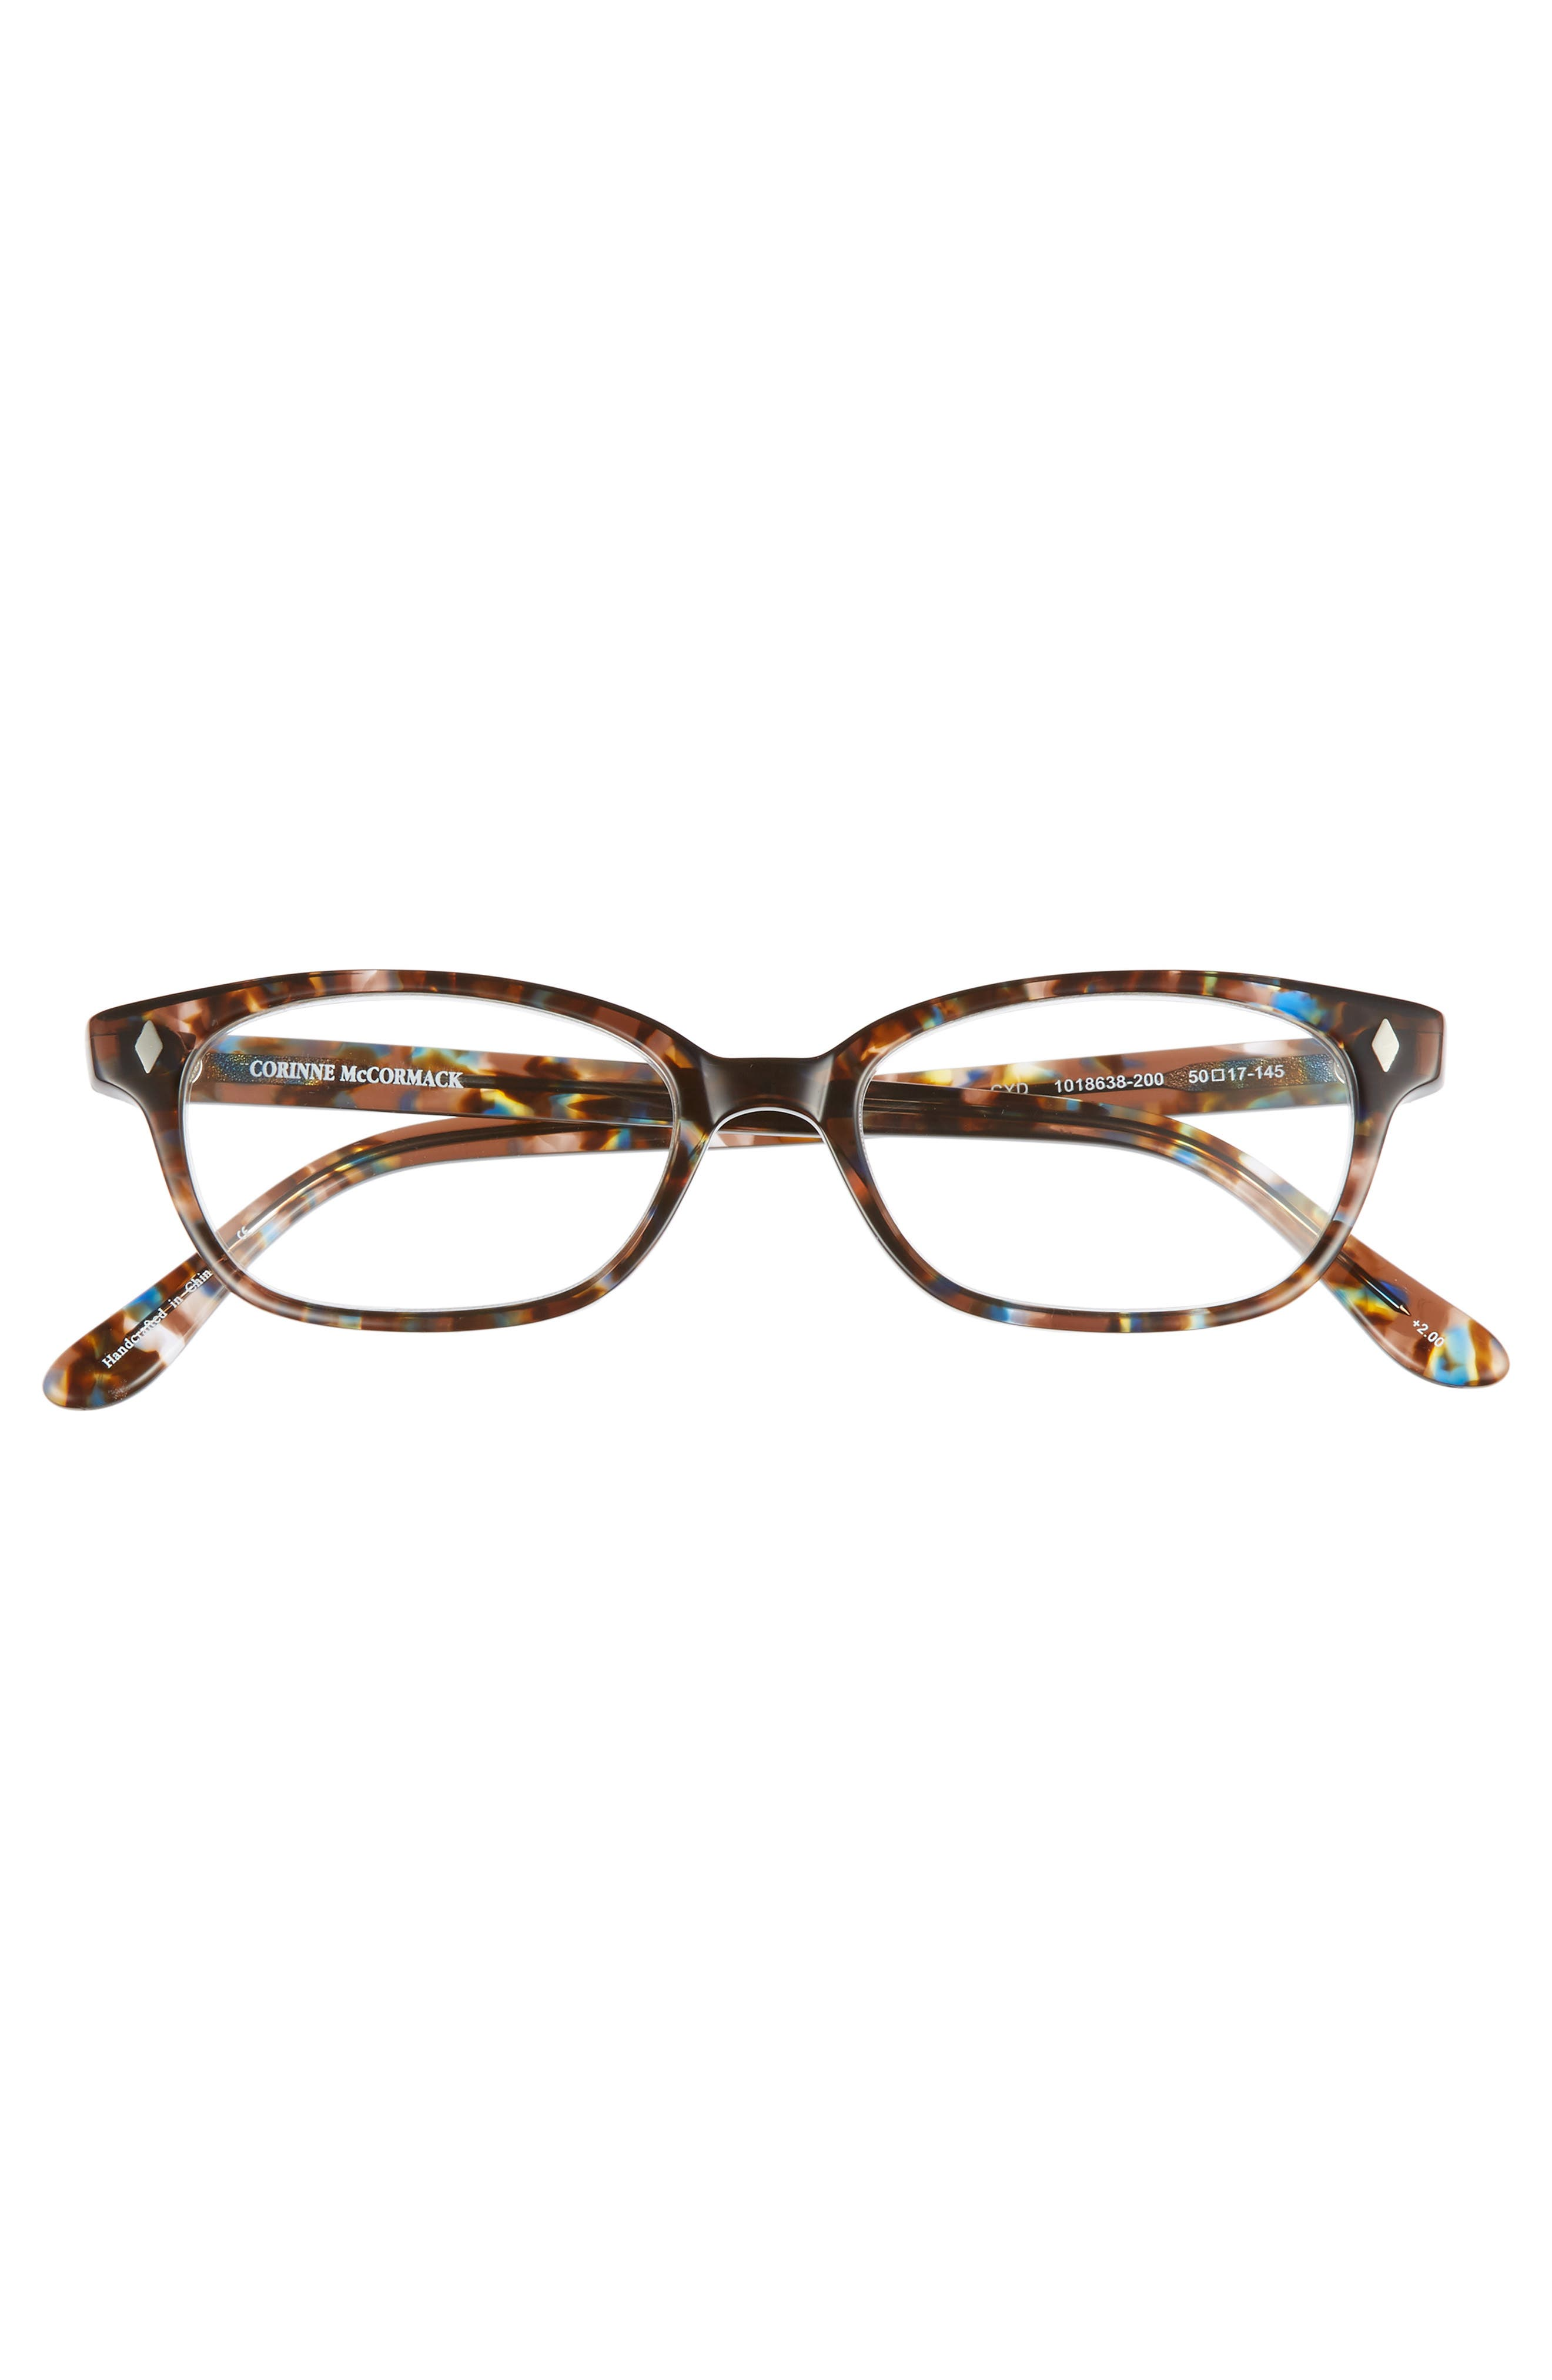 'Cyd' 50mm Reading Glasses,                             Alternate thumbnail 3, color,                             Transparent Brown Marble